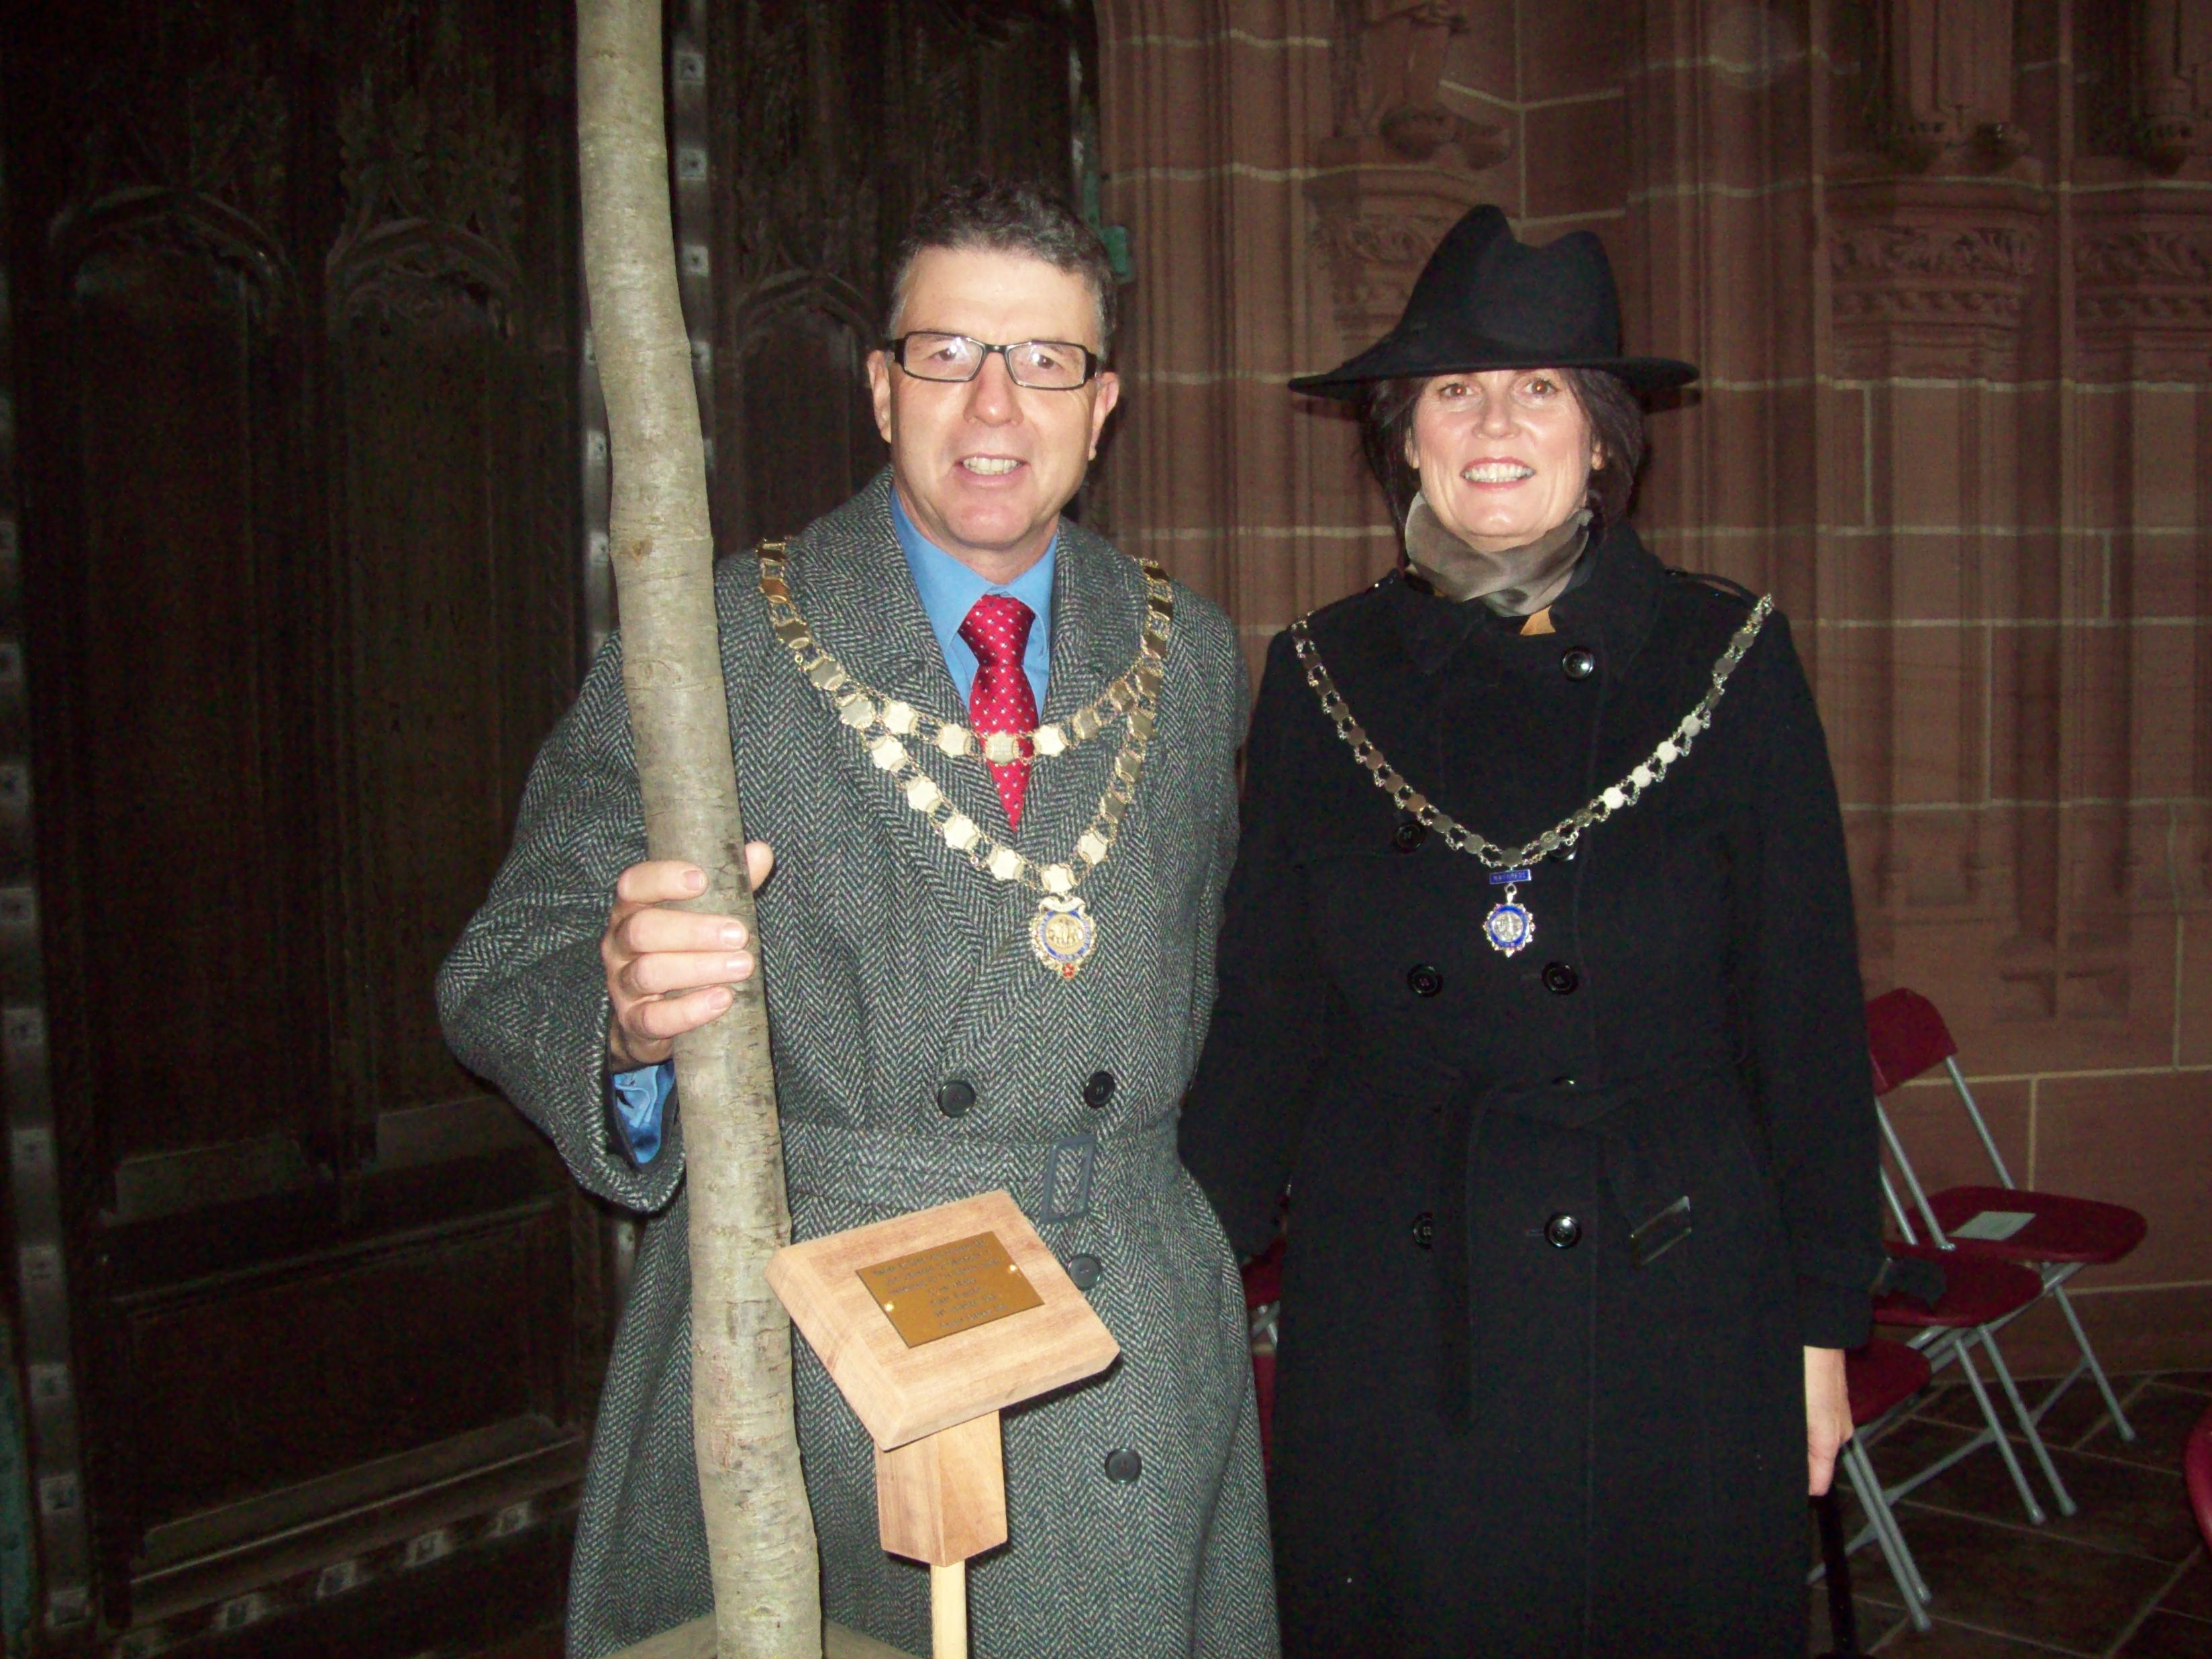 Mayor and Mayoress of Maghull, Cllrs Steve and Gwen Kermode, with the tree they planted at Liverpool Cathedral for the Jubilee Tree Planting ceremony.